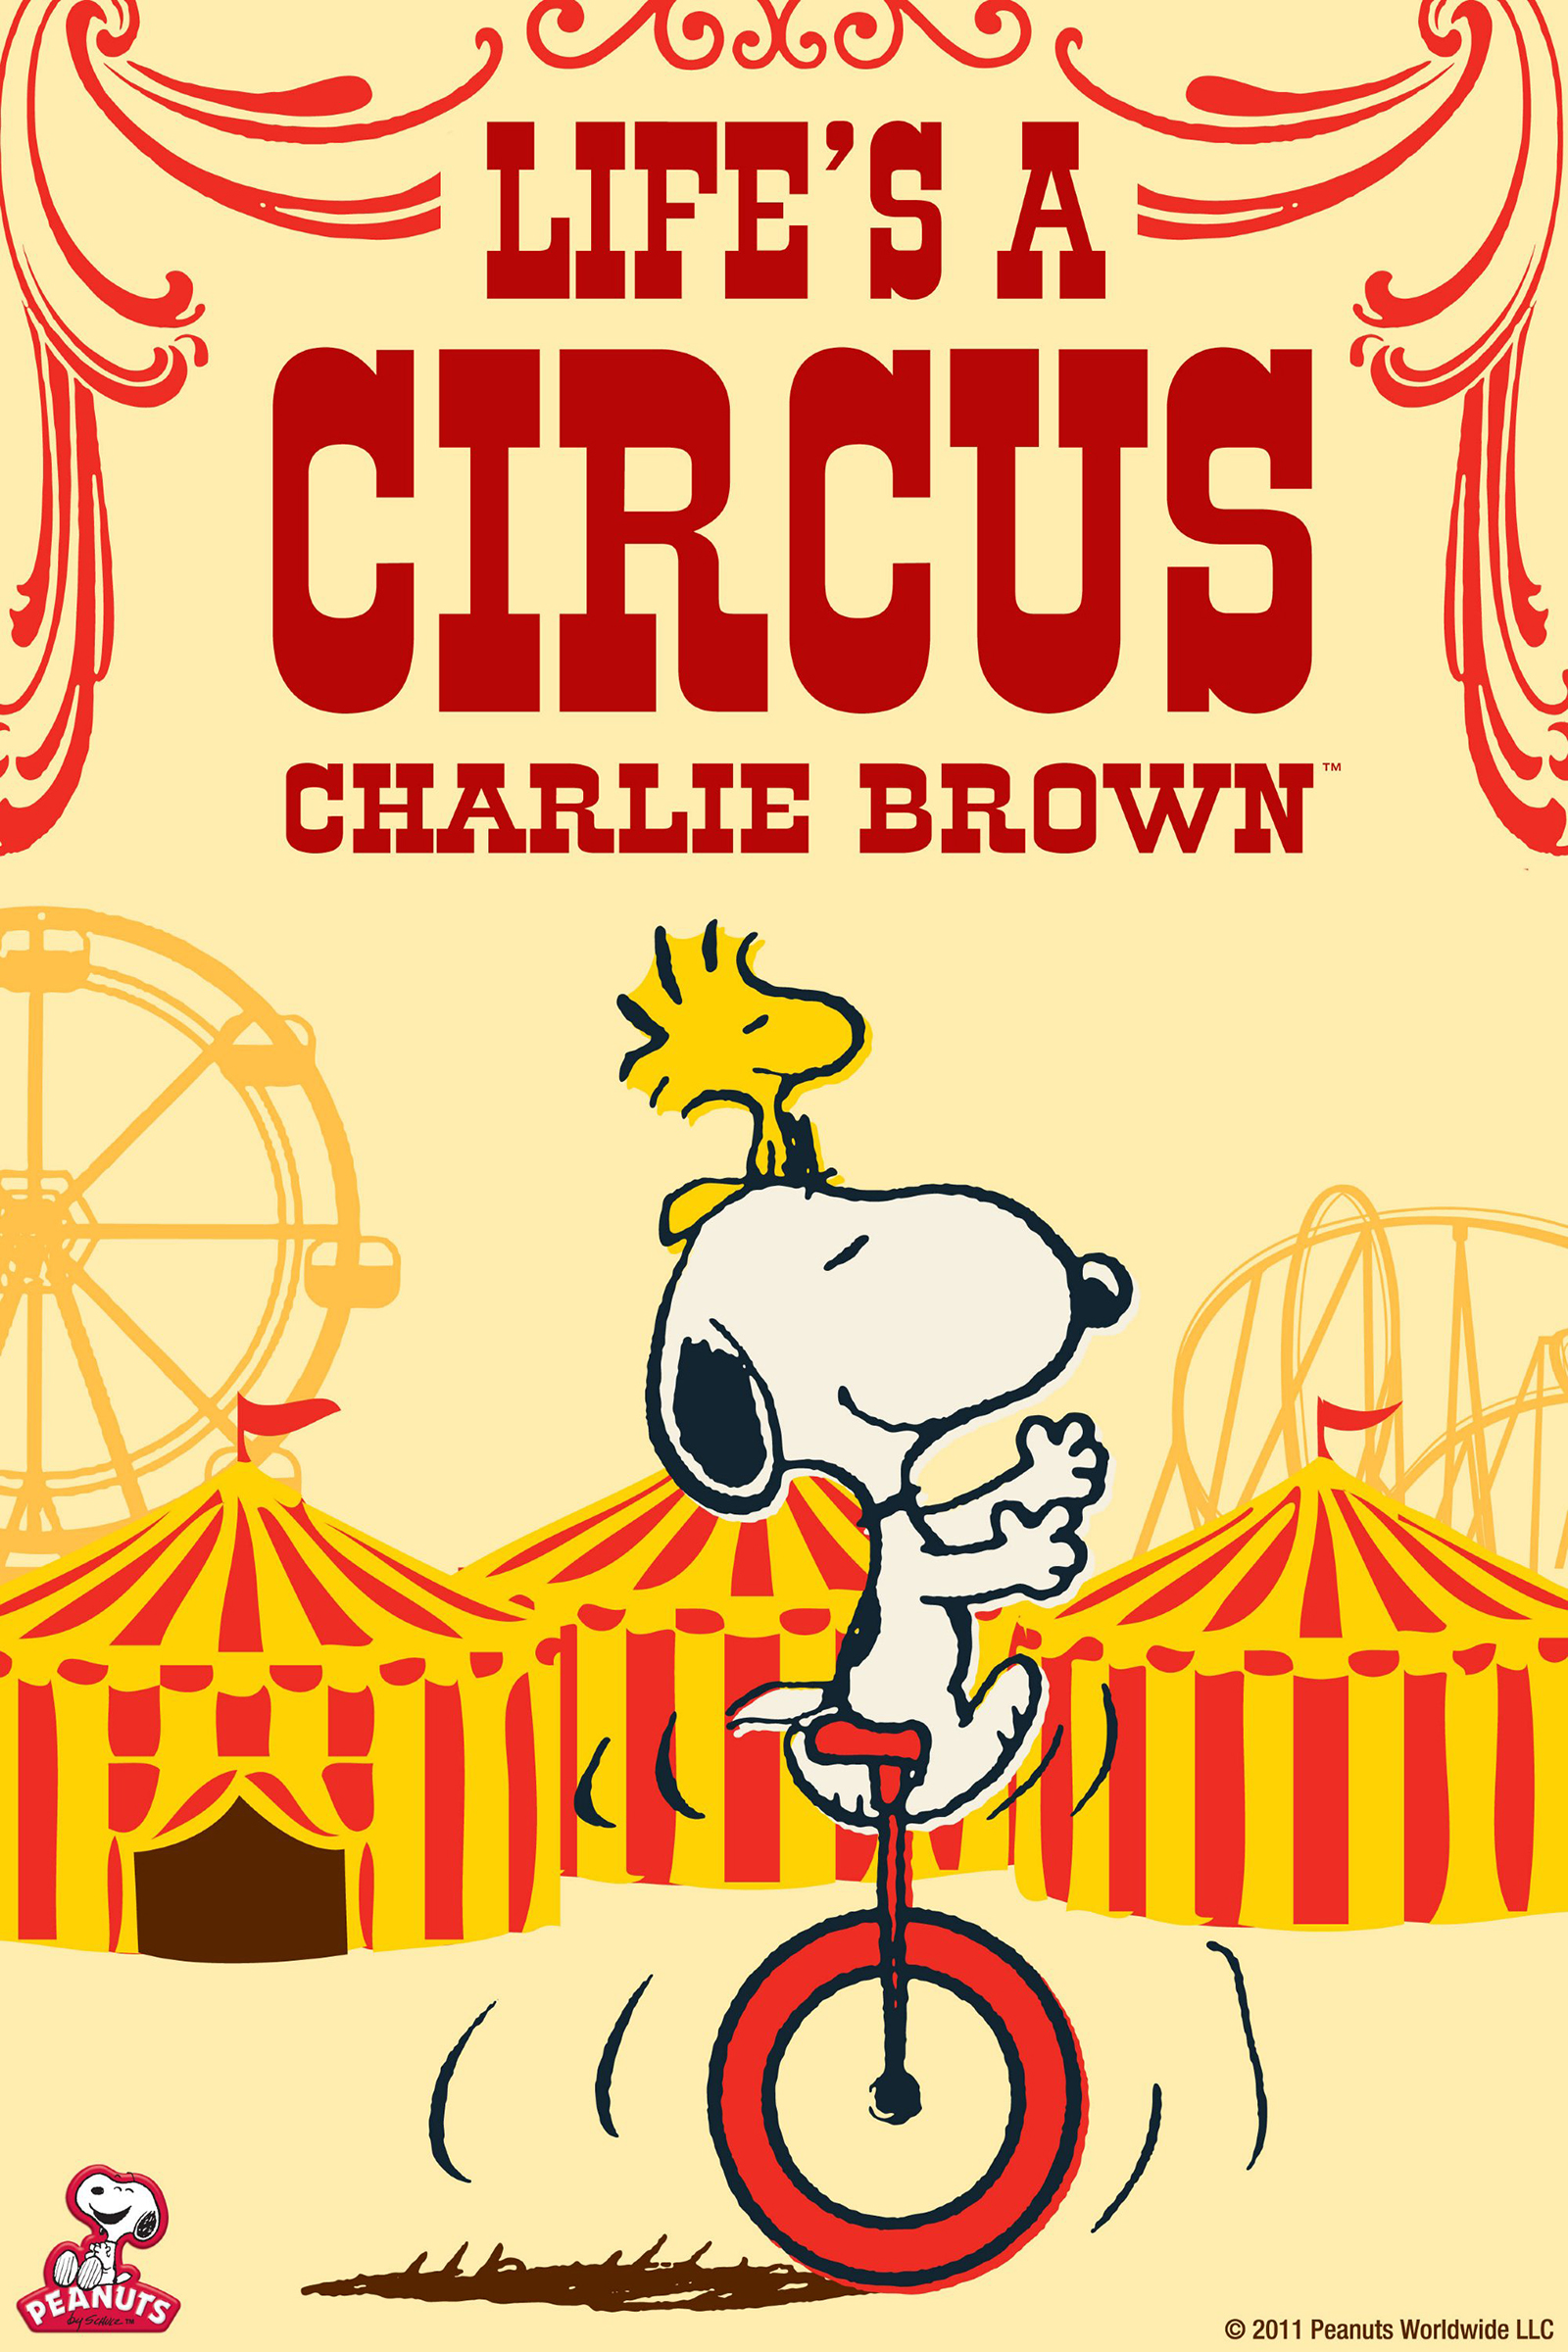 Life is a Circus, Charlie Brown credits 2